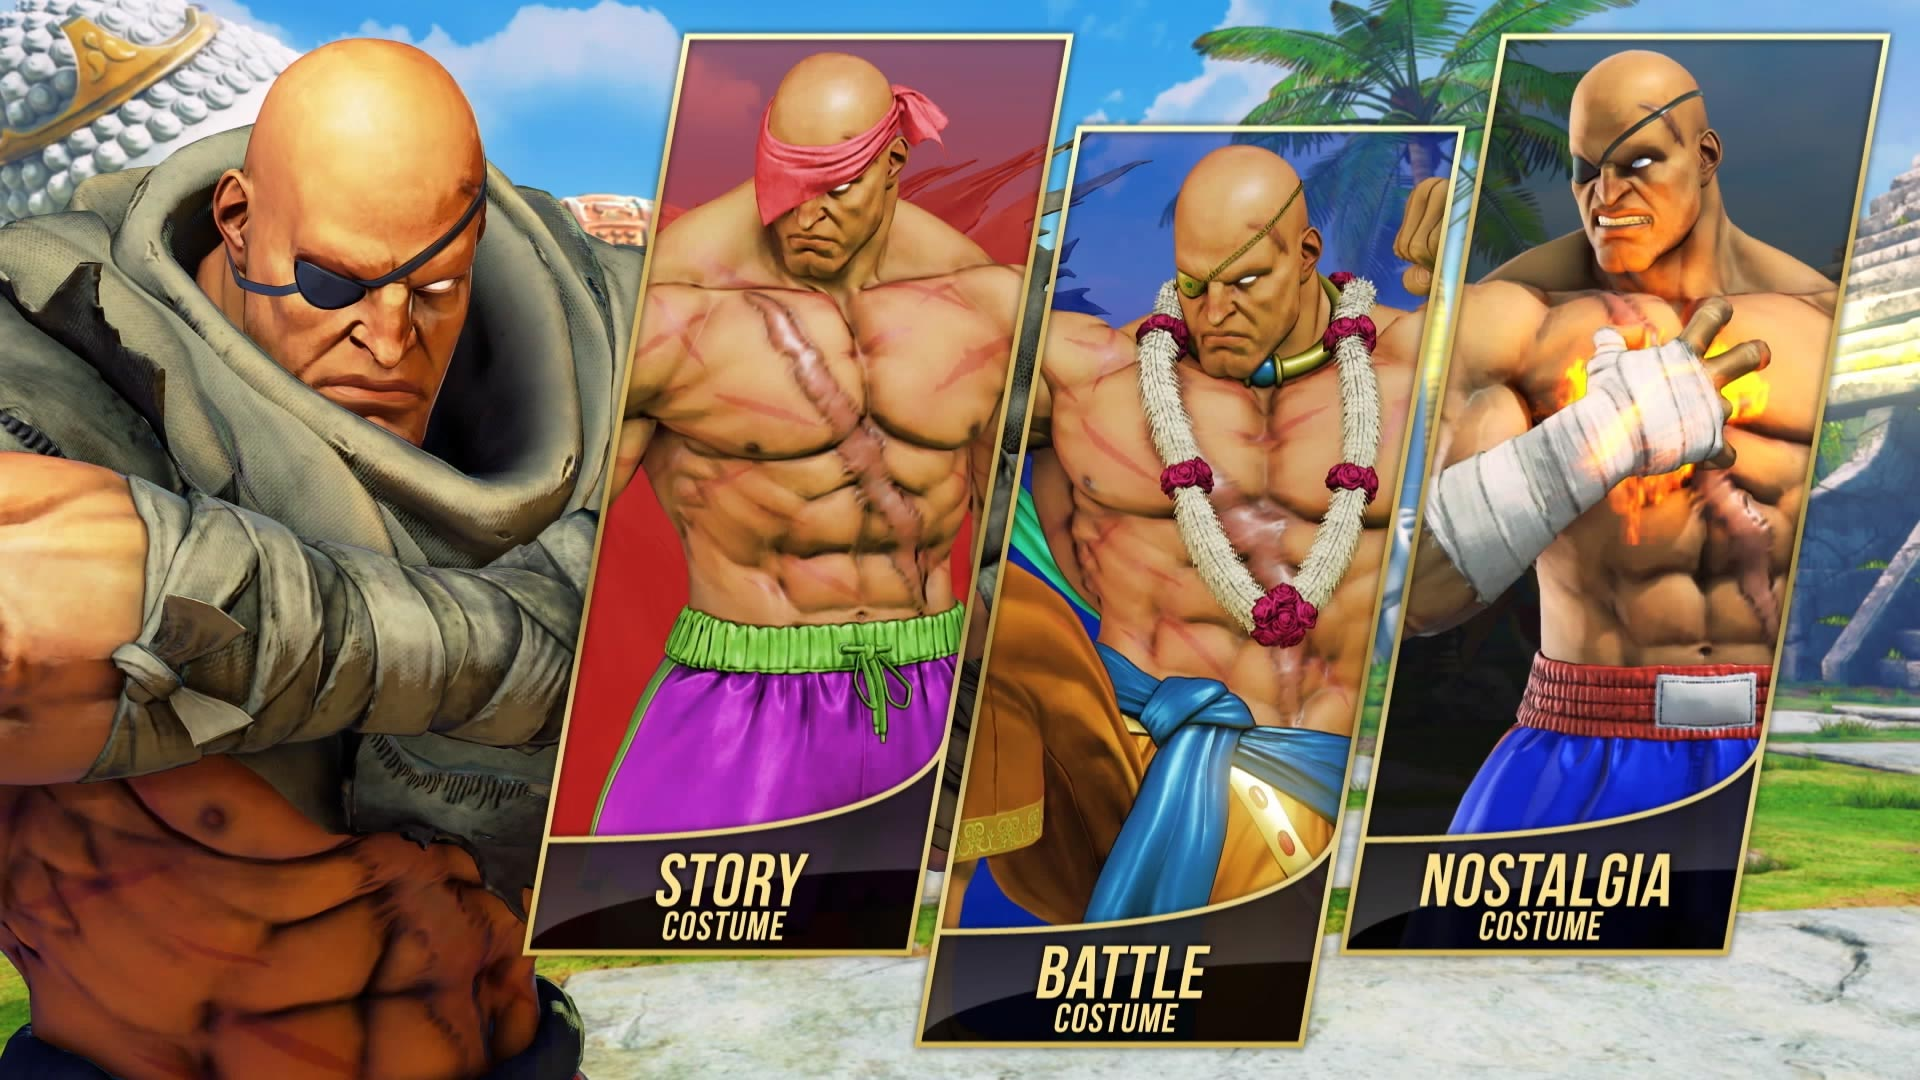 G and Sagat Street Fighter 5: Arcade Edition 1 out of 15 image gallery